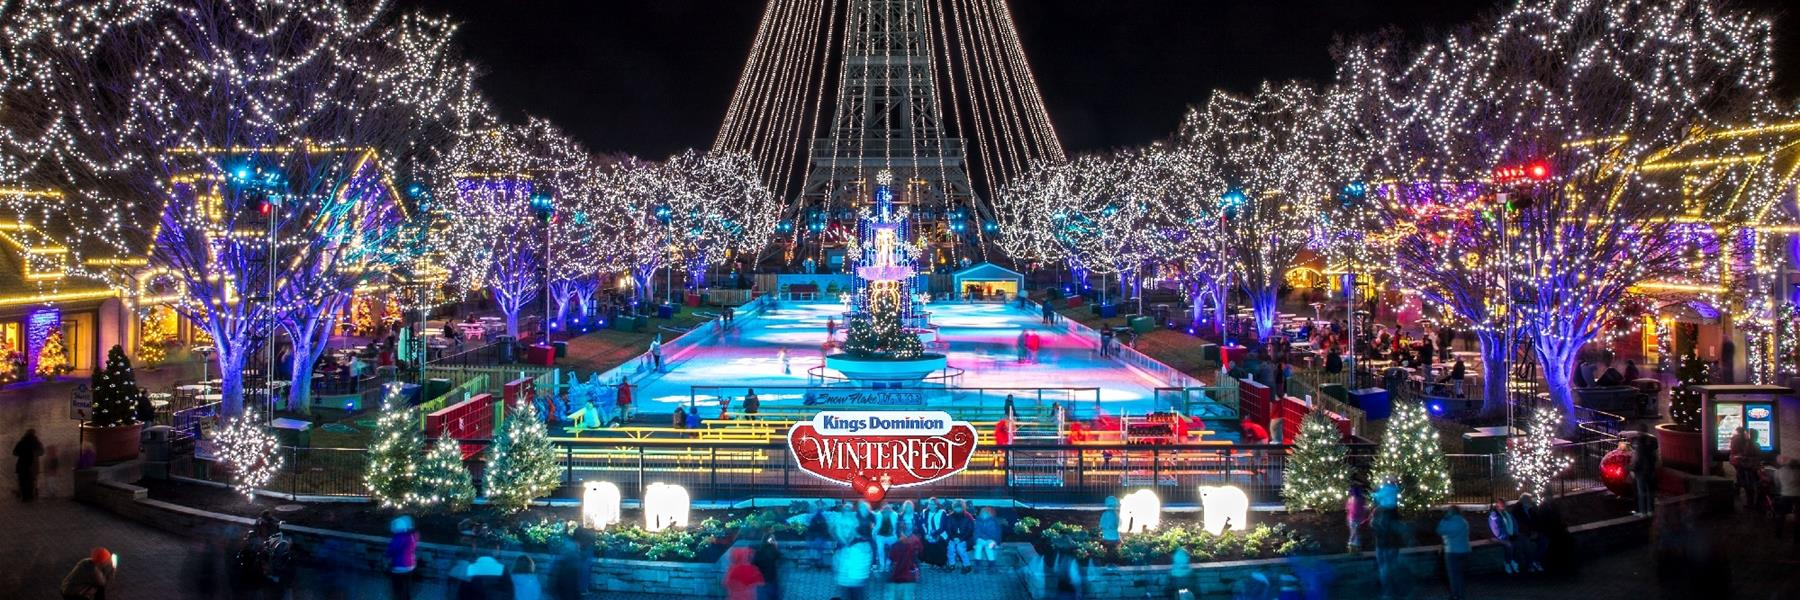 Winterfest at Kings Dominion in Doswell, Virginia